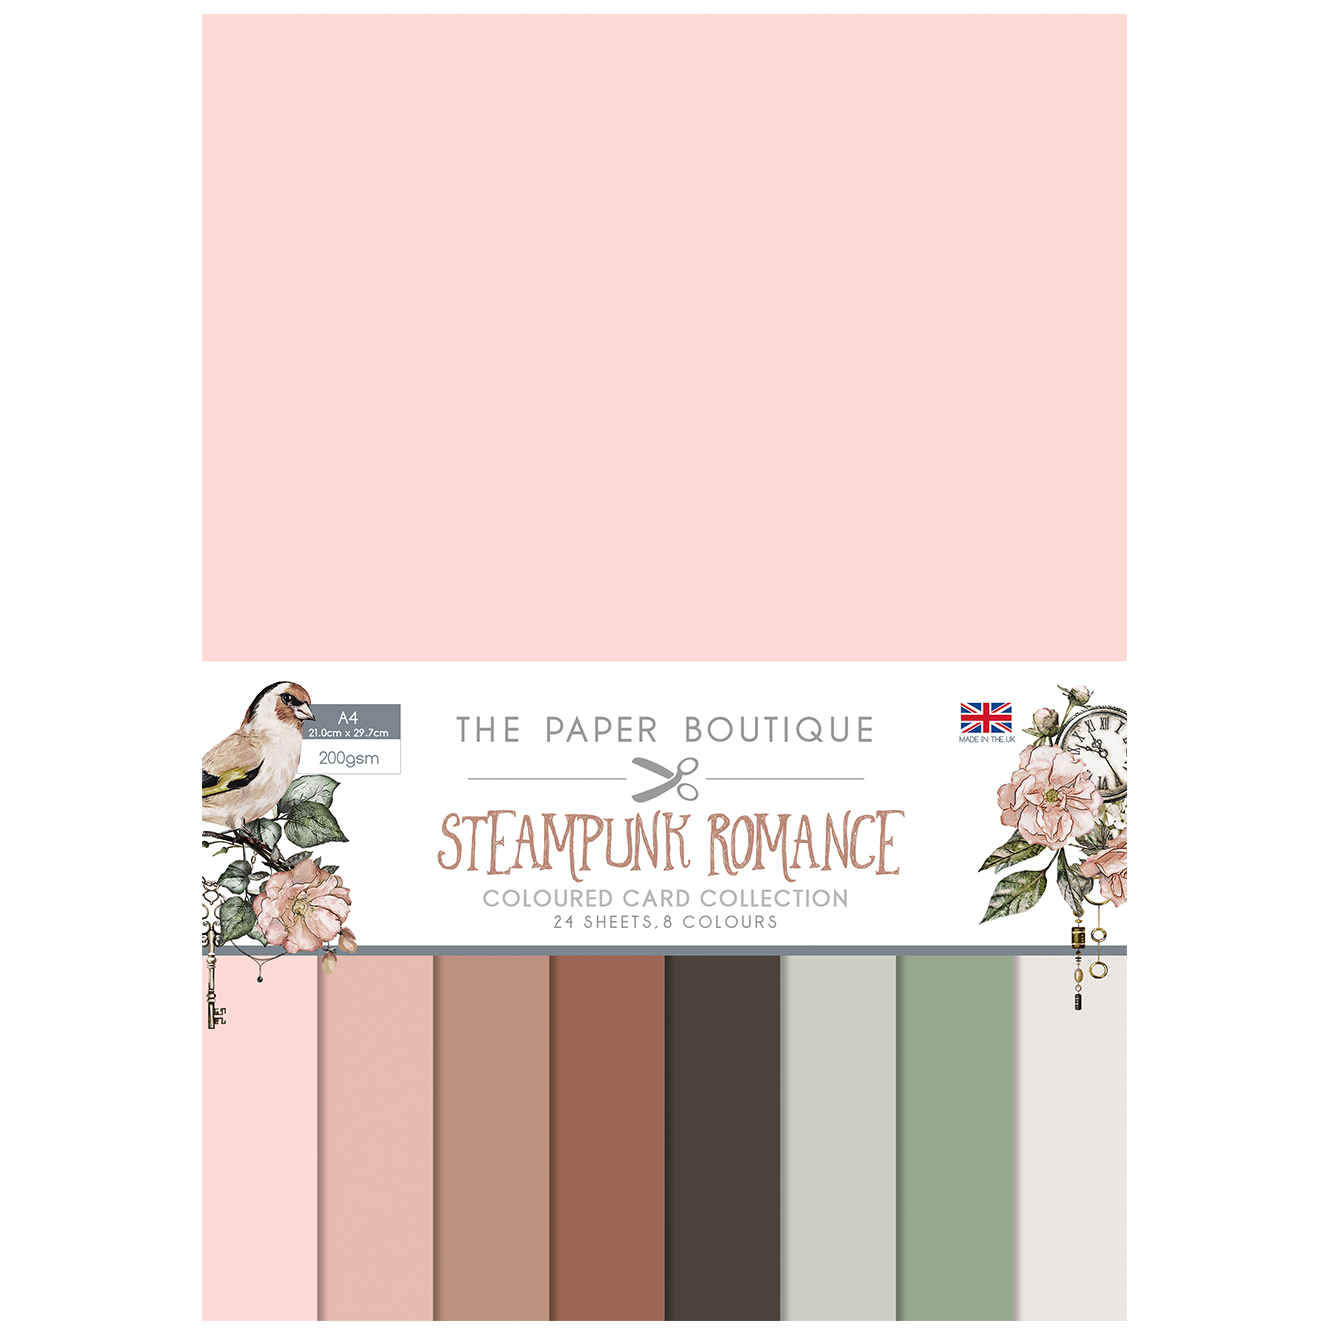 The Paper Boutique Steampunk Romance Coloured Card Collection